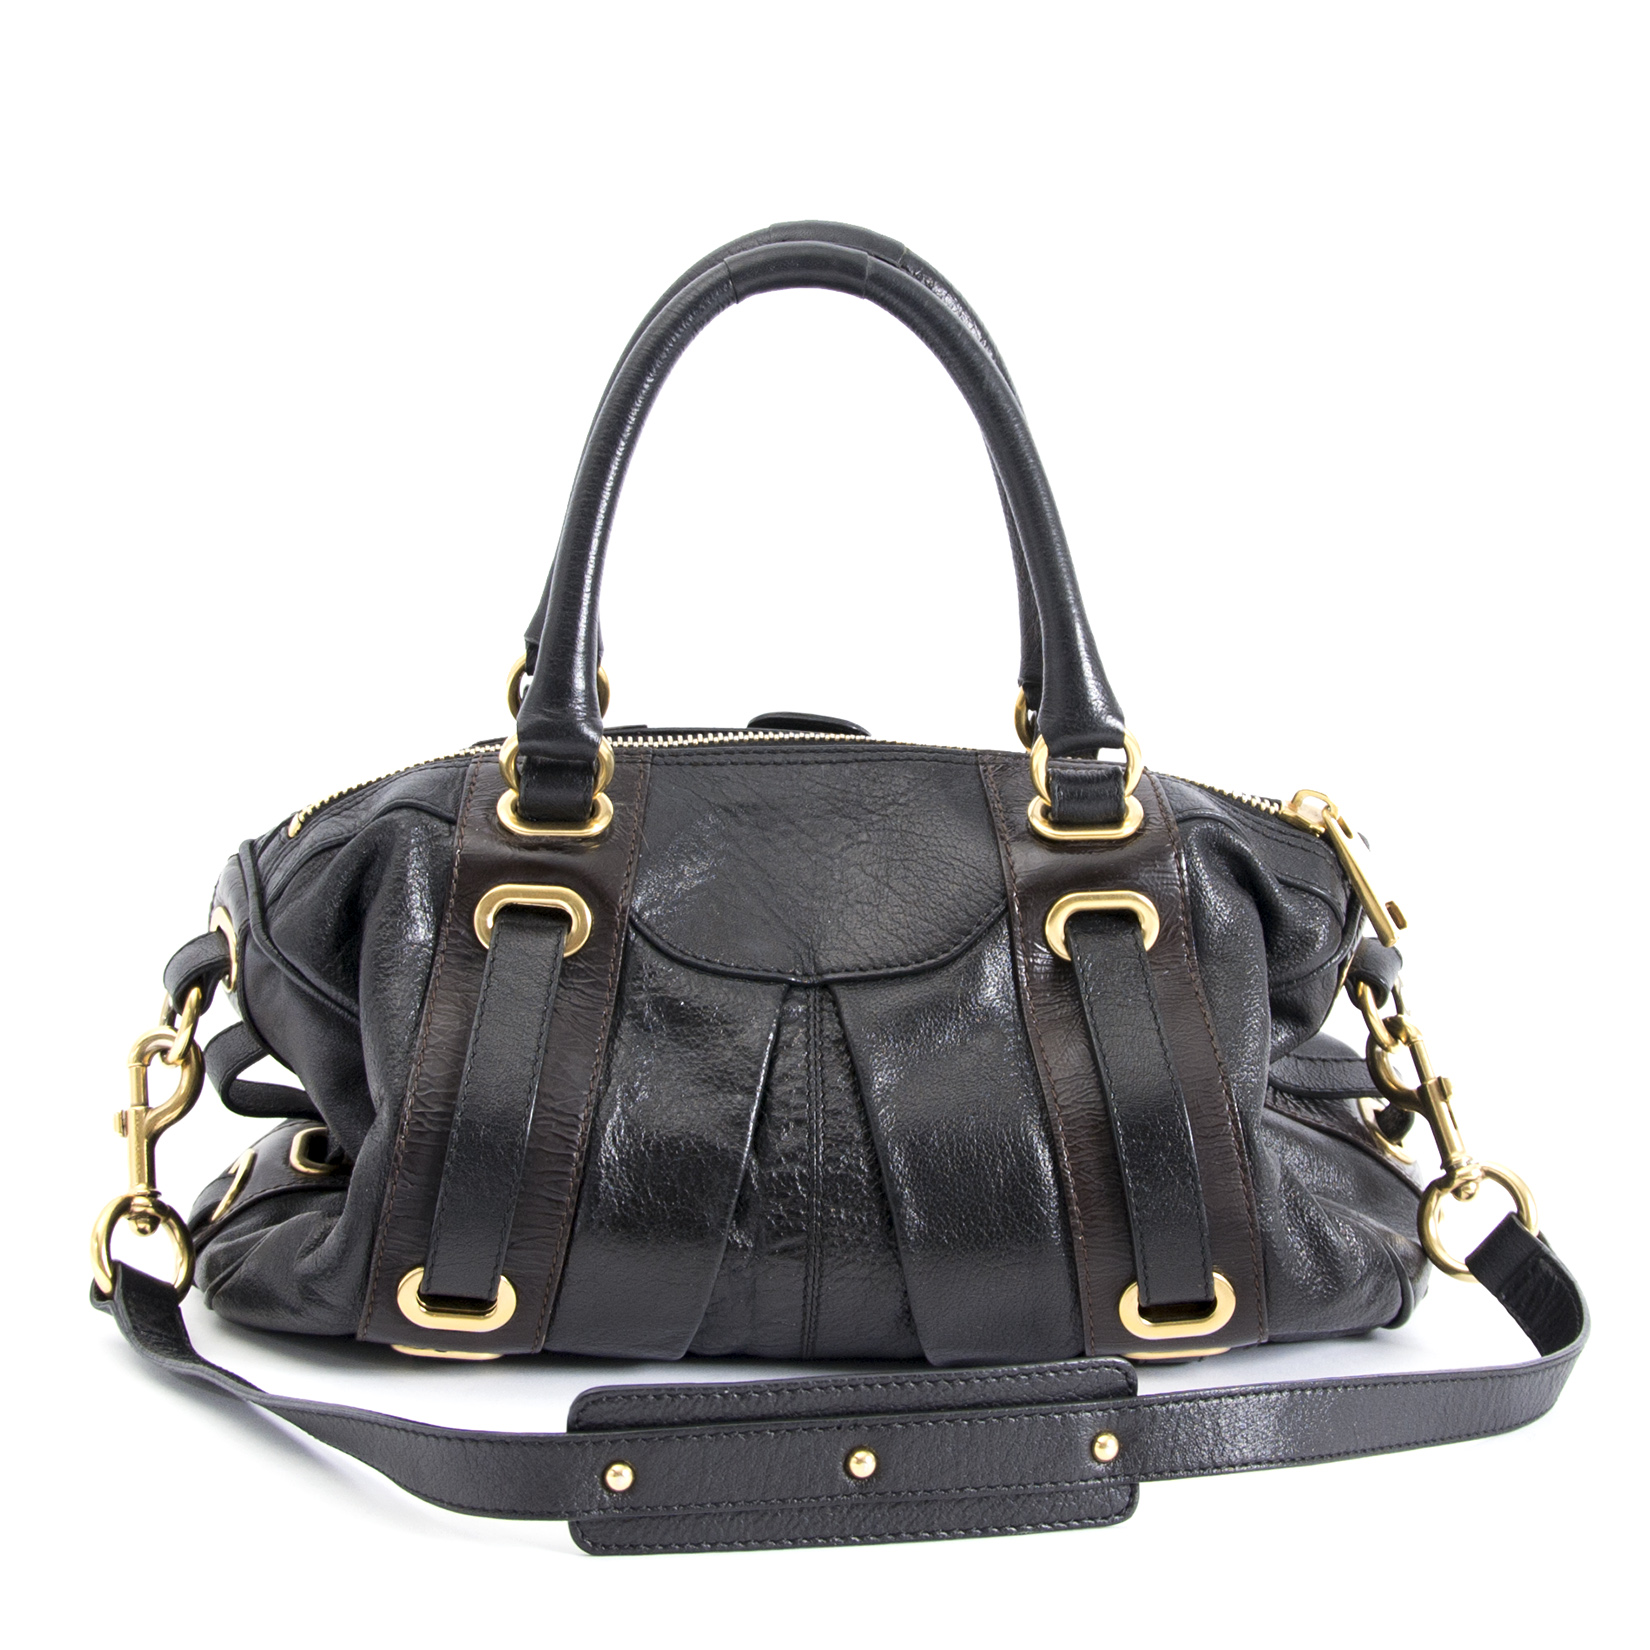 shop safe online your Marc Jacobs Black Leather Bag